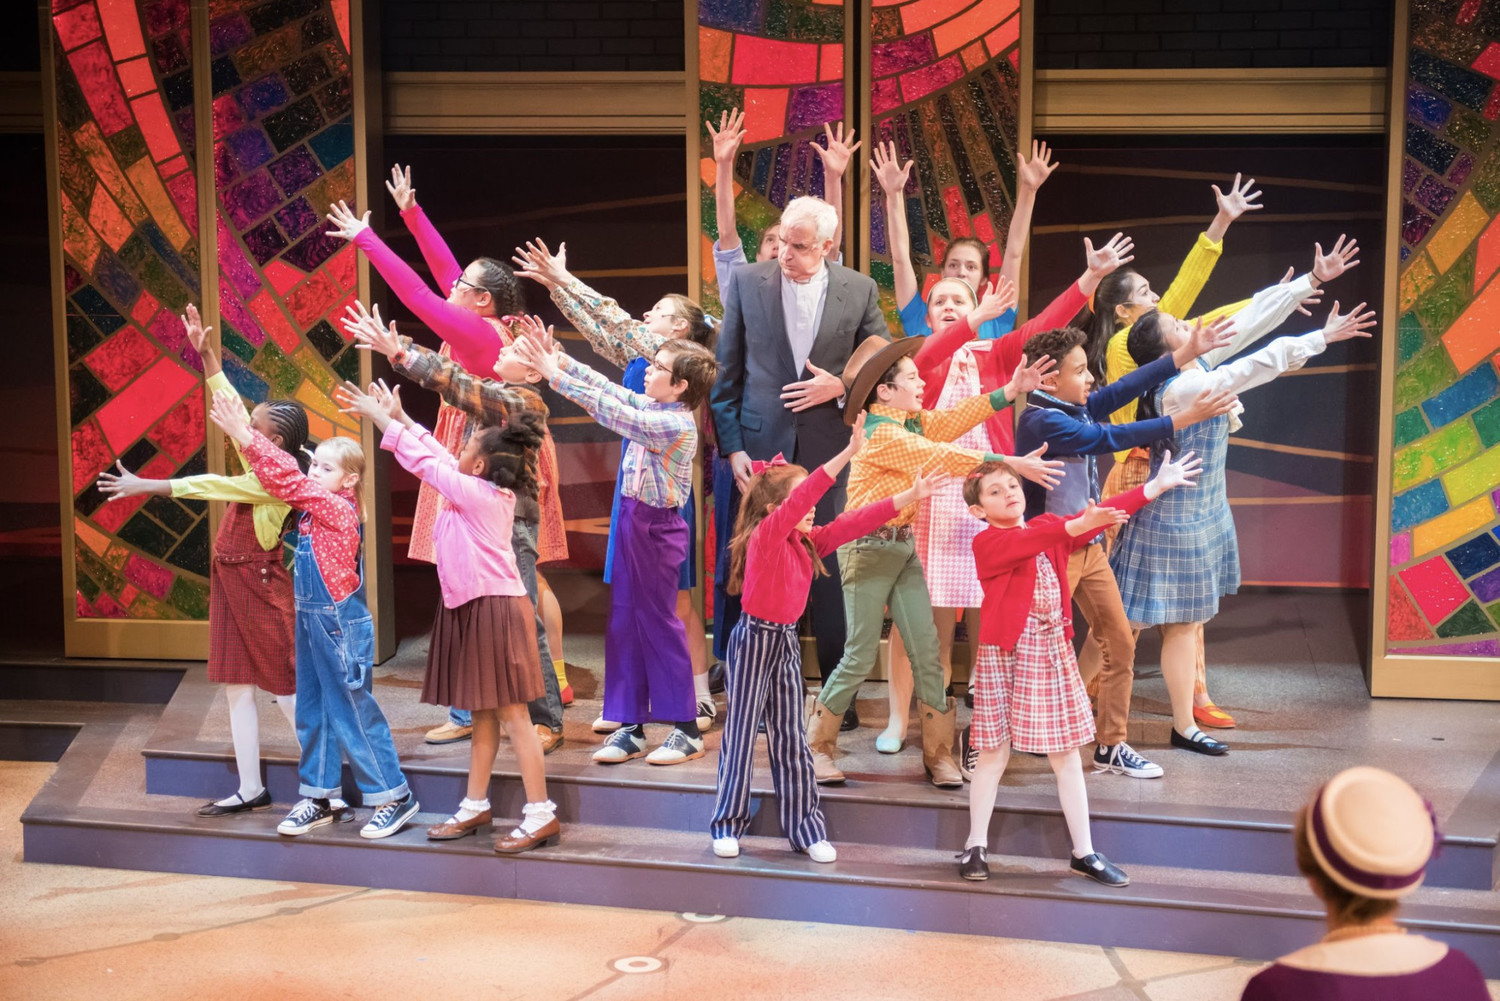 BWW Review: THE BEST CHRISTMAS PAGEANT EVER Heralds Musical Humor & Joy at Milwaukee's First Stage